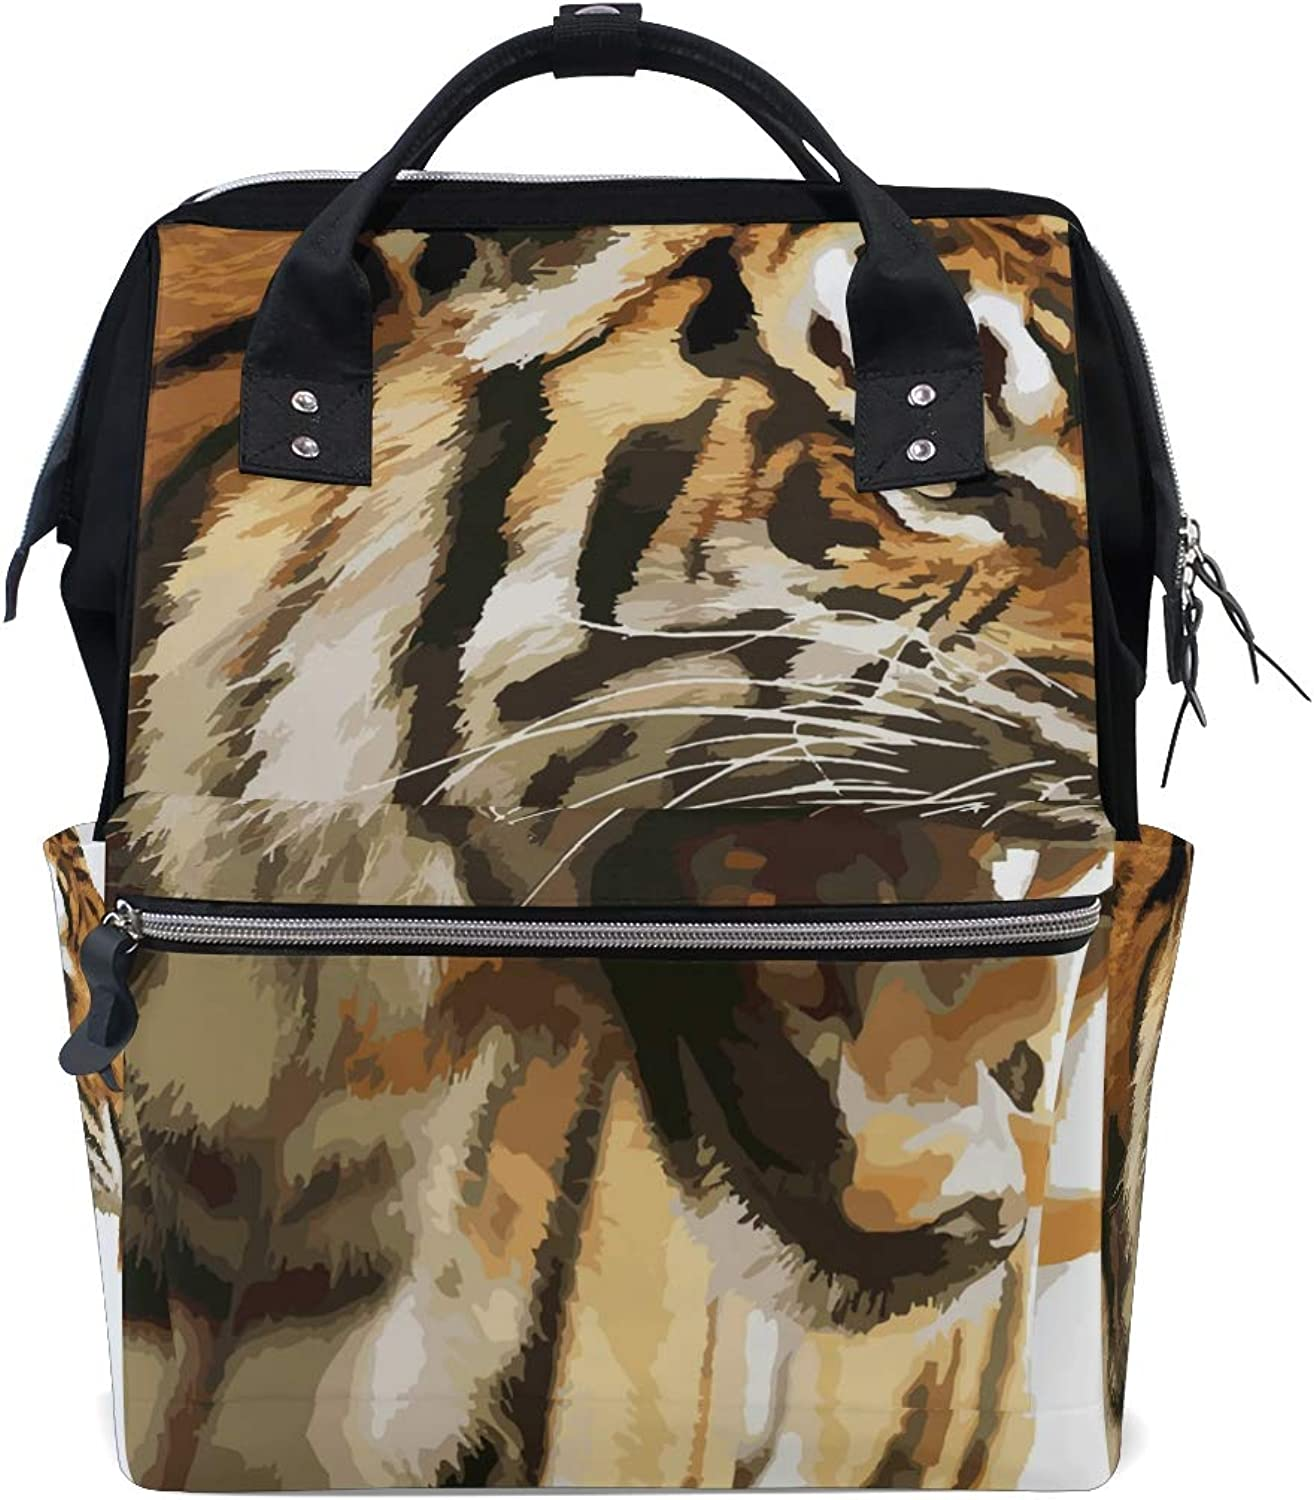 032e9e894b16 FAJRO Tiger Roar PaintingTravel Canvas Handbag School Pack Backpack ...